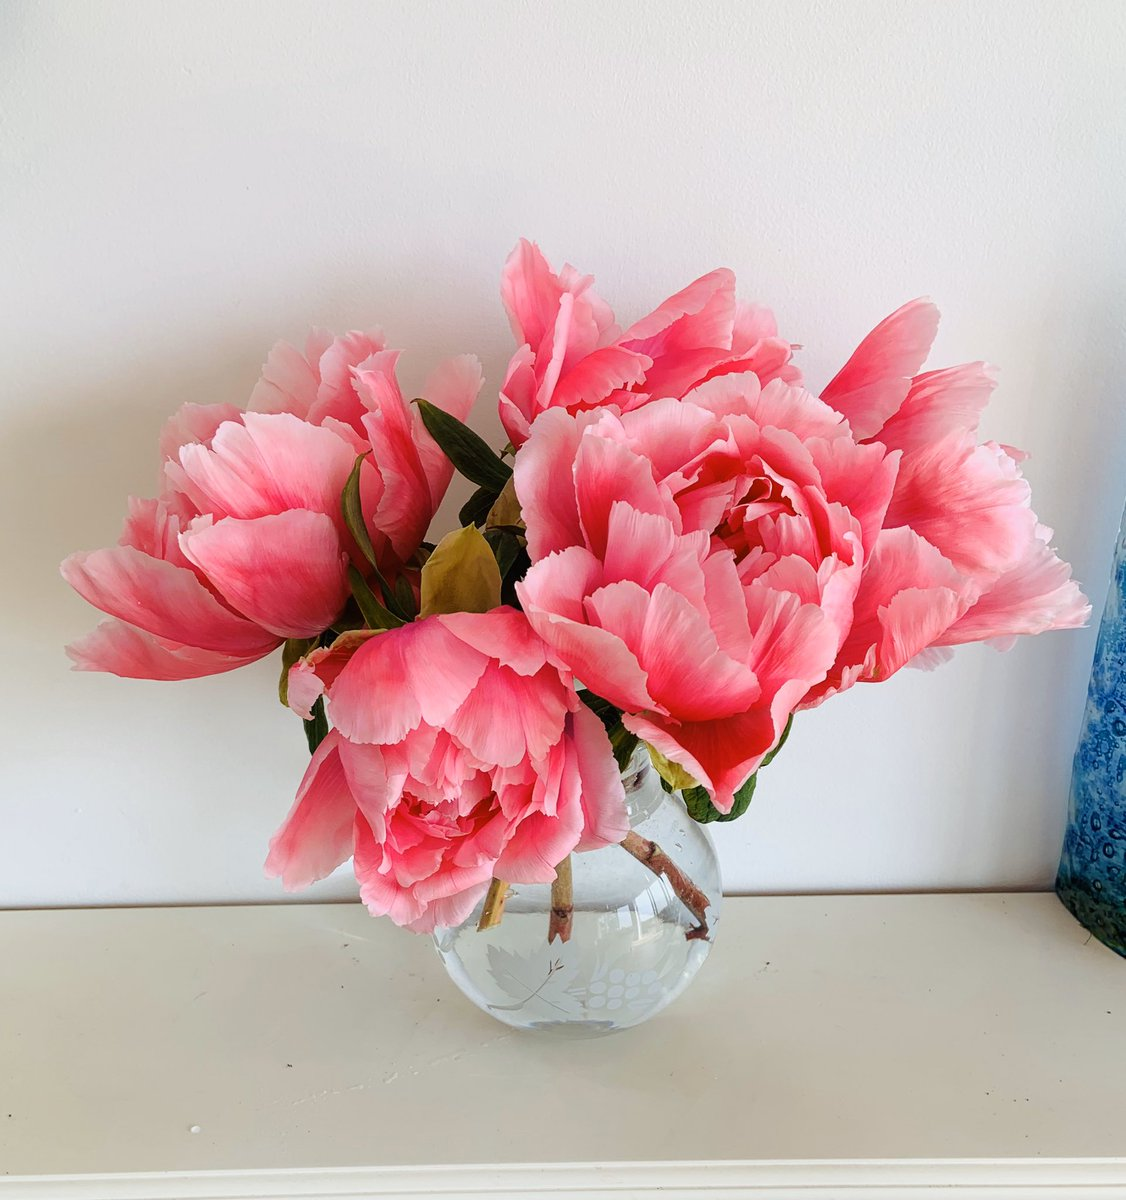 A Punnet of Peonies... #garden to #home #Peony #pink  pic.twitter.com/j045h6CN8c